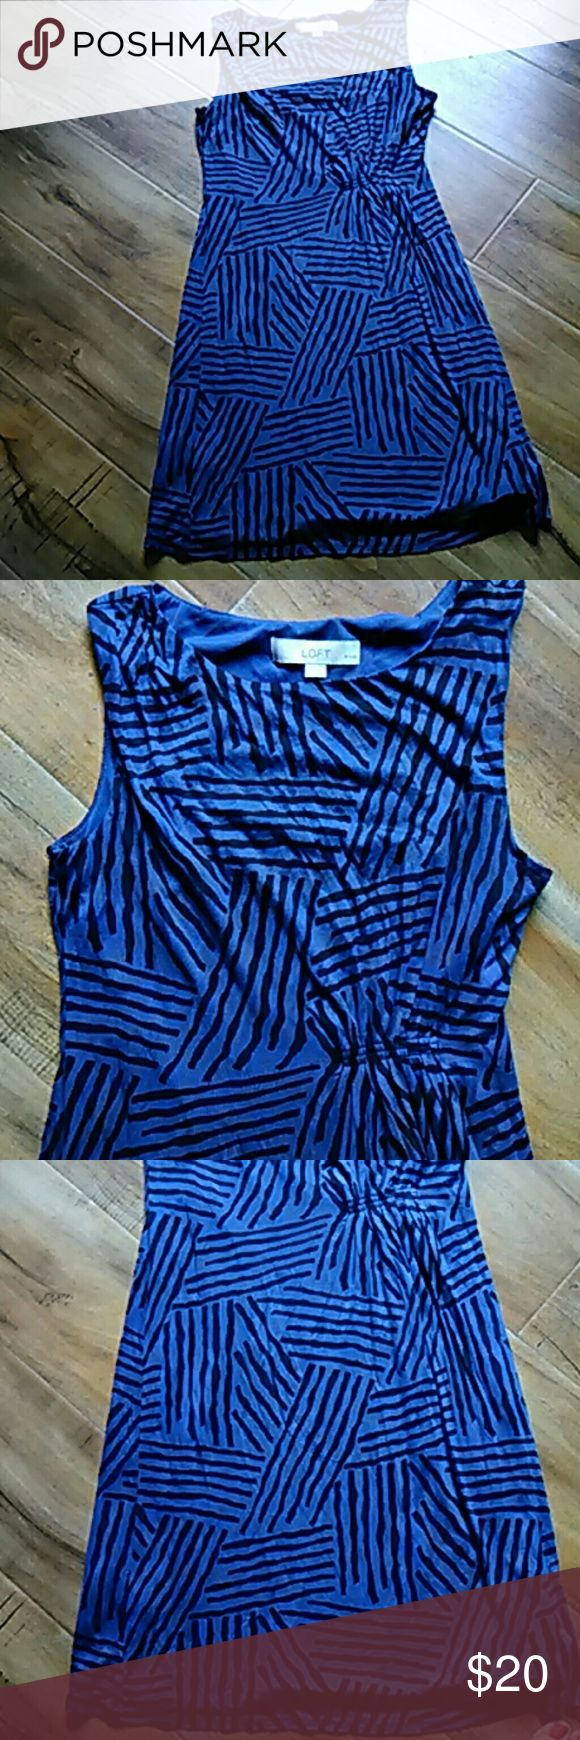 Loft dress XSP Cute dresses in black and blue ready for the office already for  leisure. And good condition. This just was originally $129 LOFT Dresses Midi